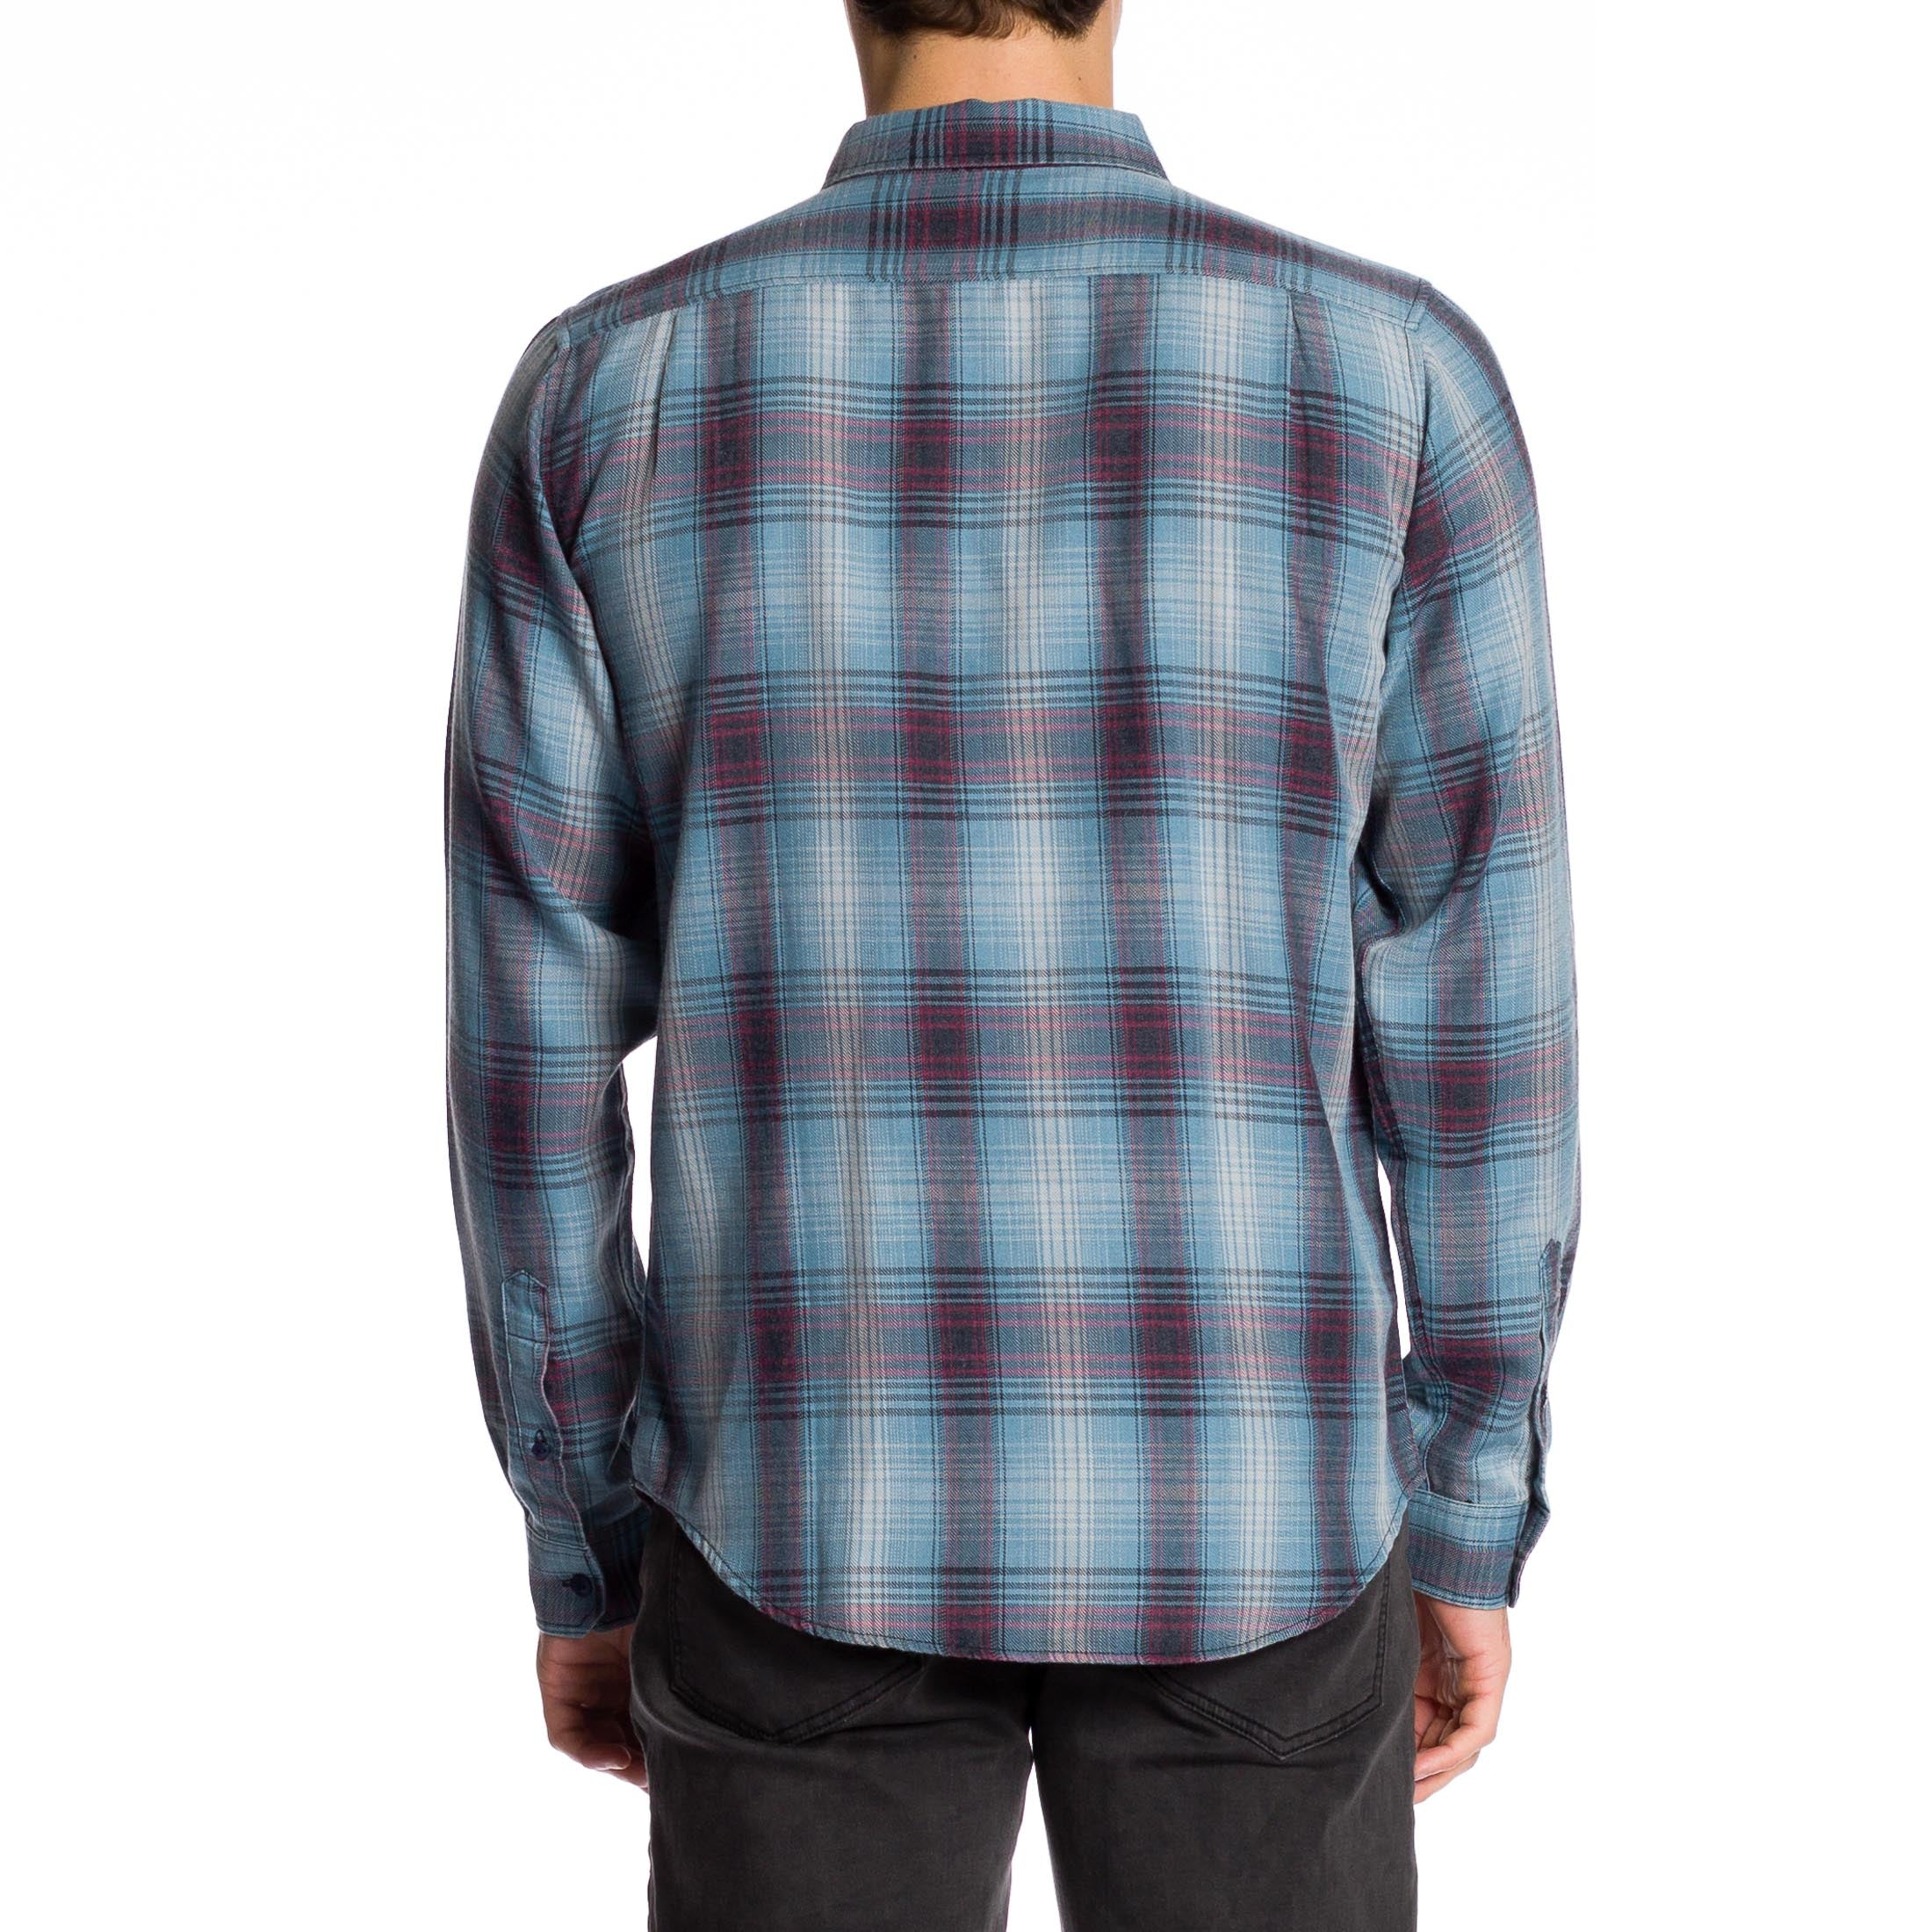 Zephyr Shirt - Blue